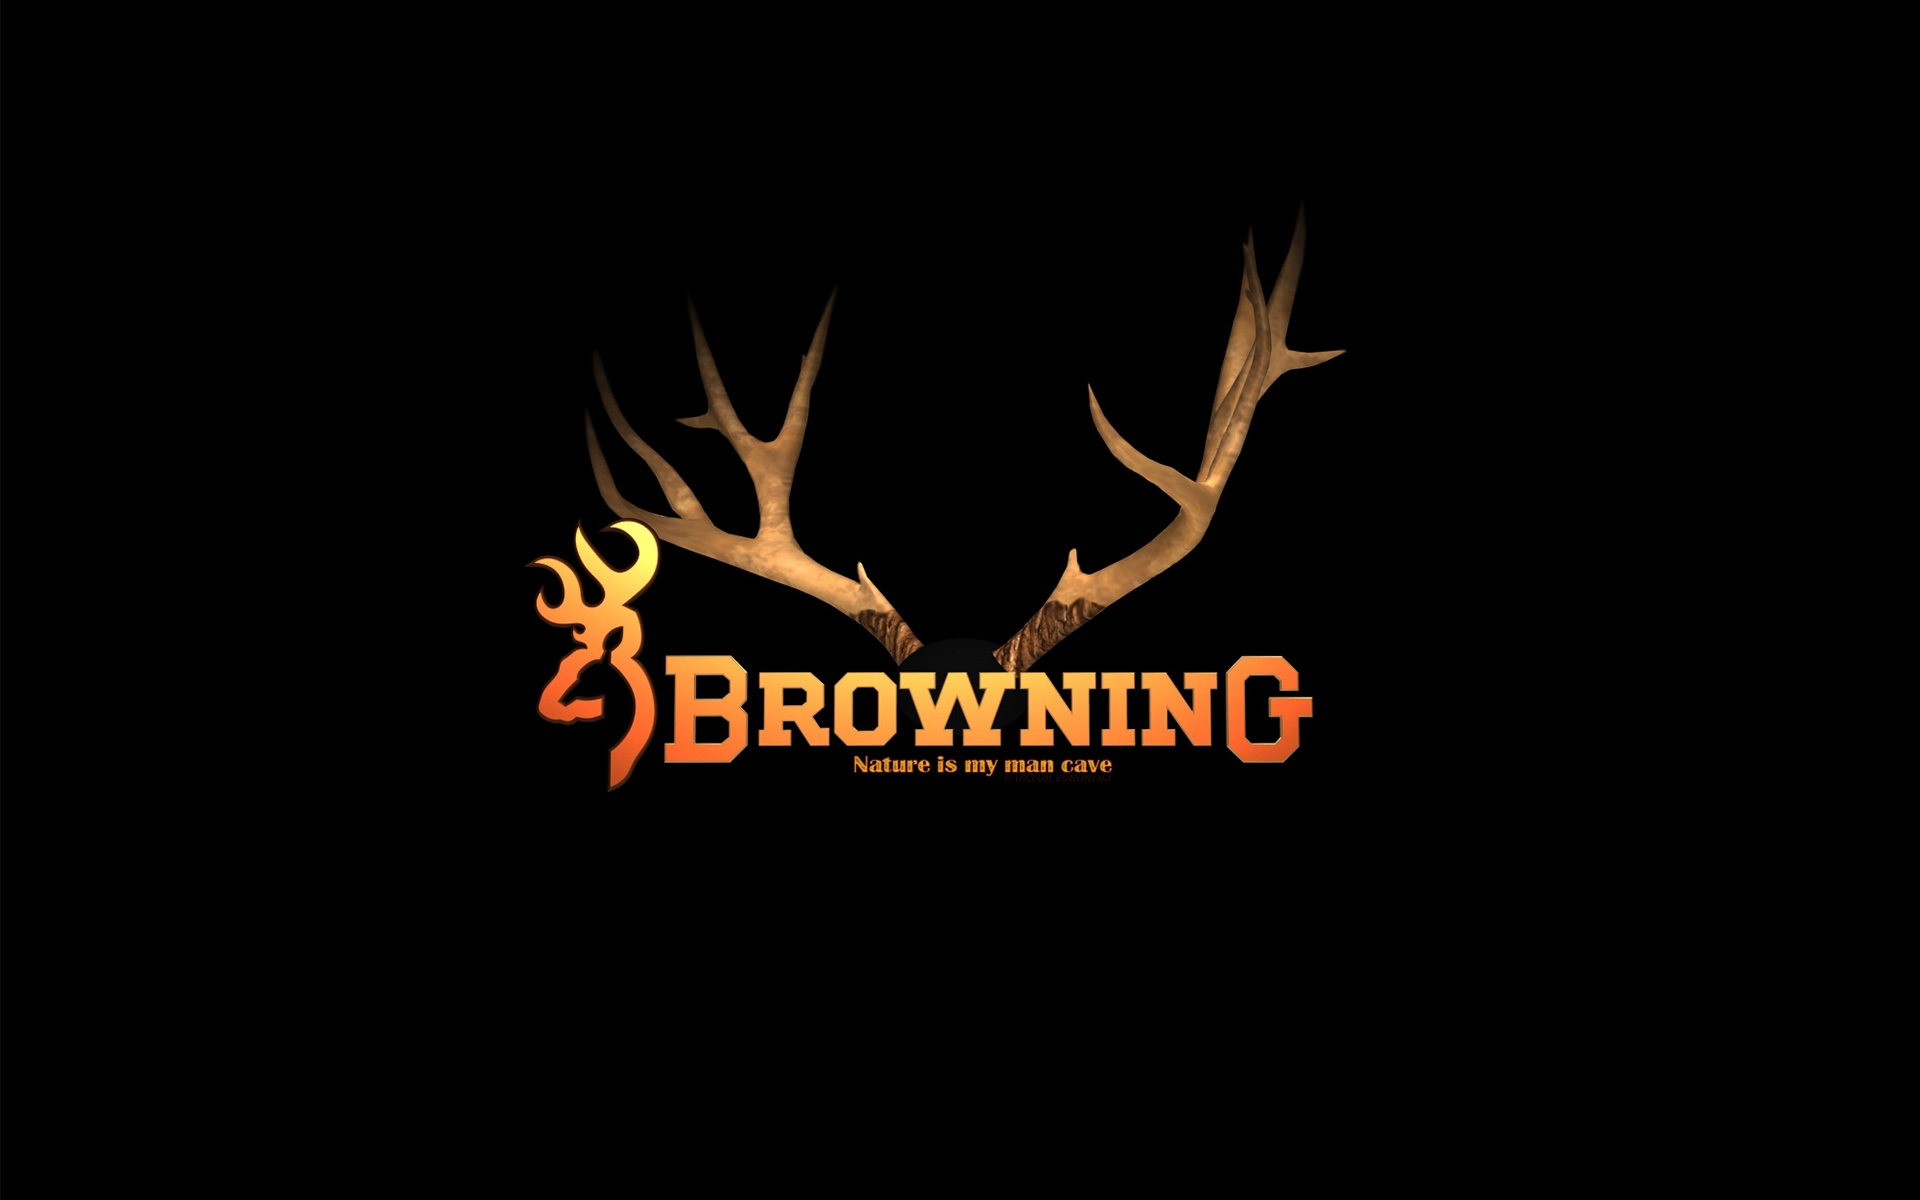 Browning Desktop Wallpaper Images Pictures   Becuo 1920x1200